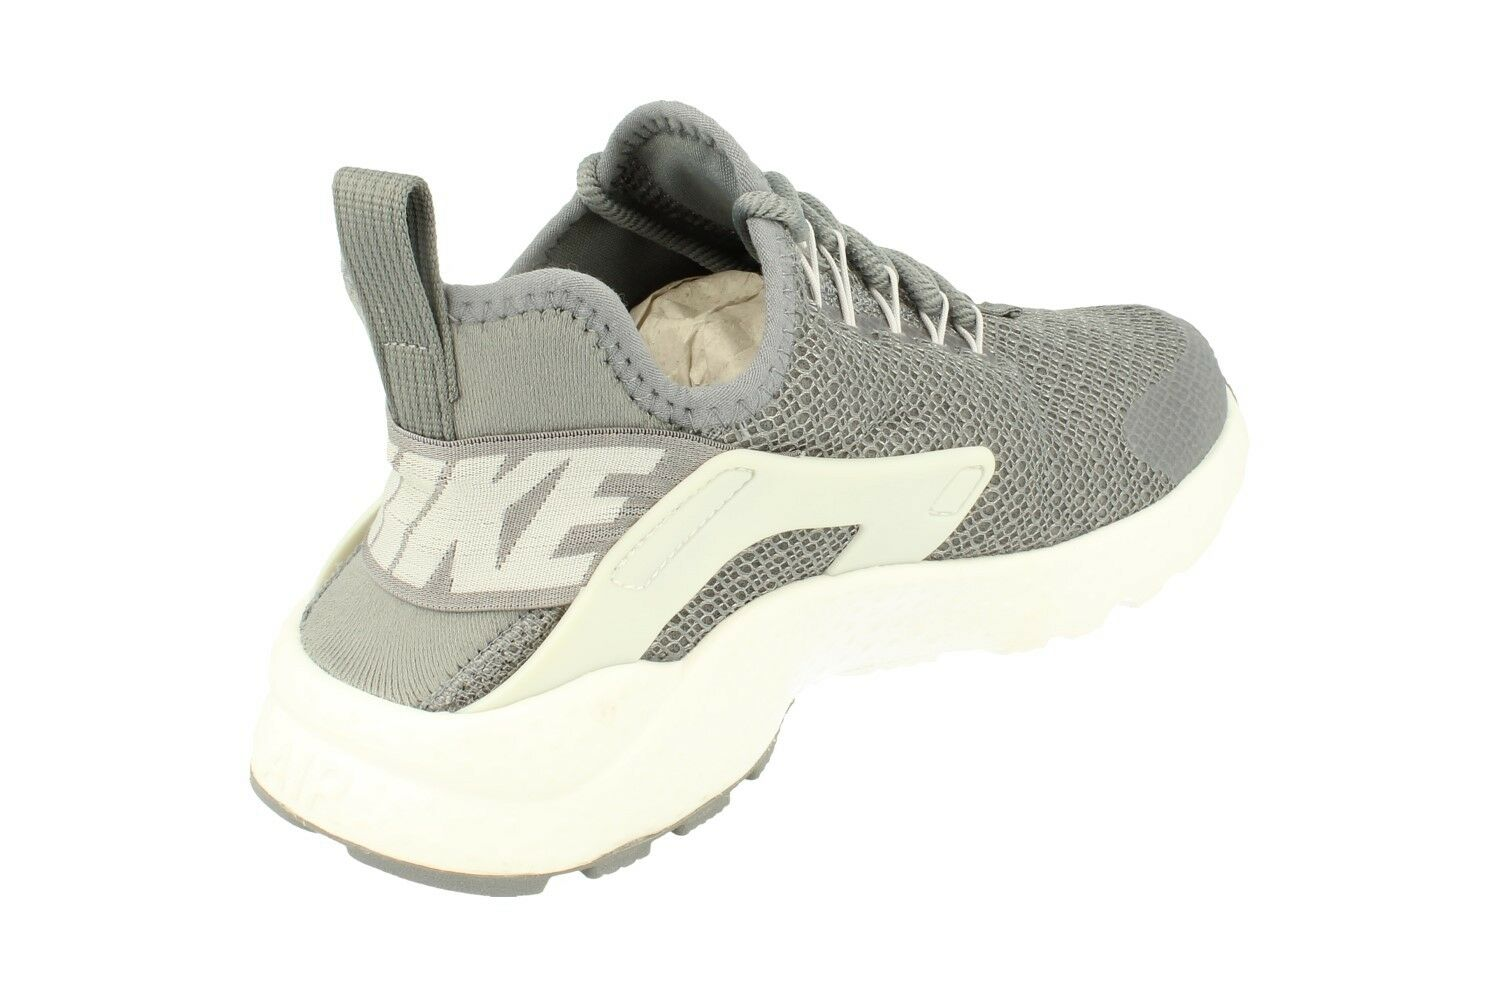 new concept 769c3 aa78b ... canada nike femme air huarache 819151 courir ultra fonctionnement  trainers 819151 huarache sneakers chaussures 012 a9c2d4